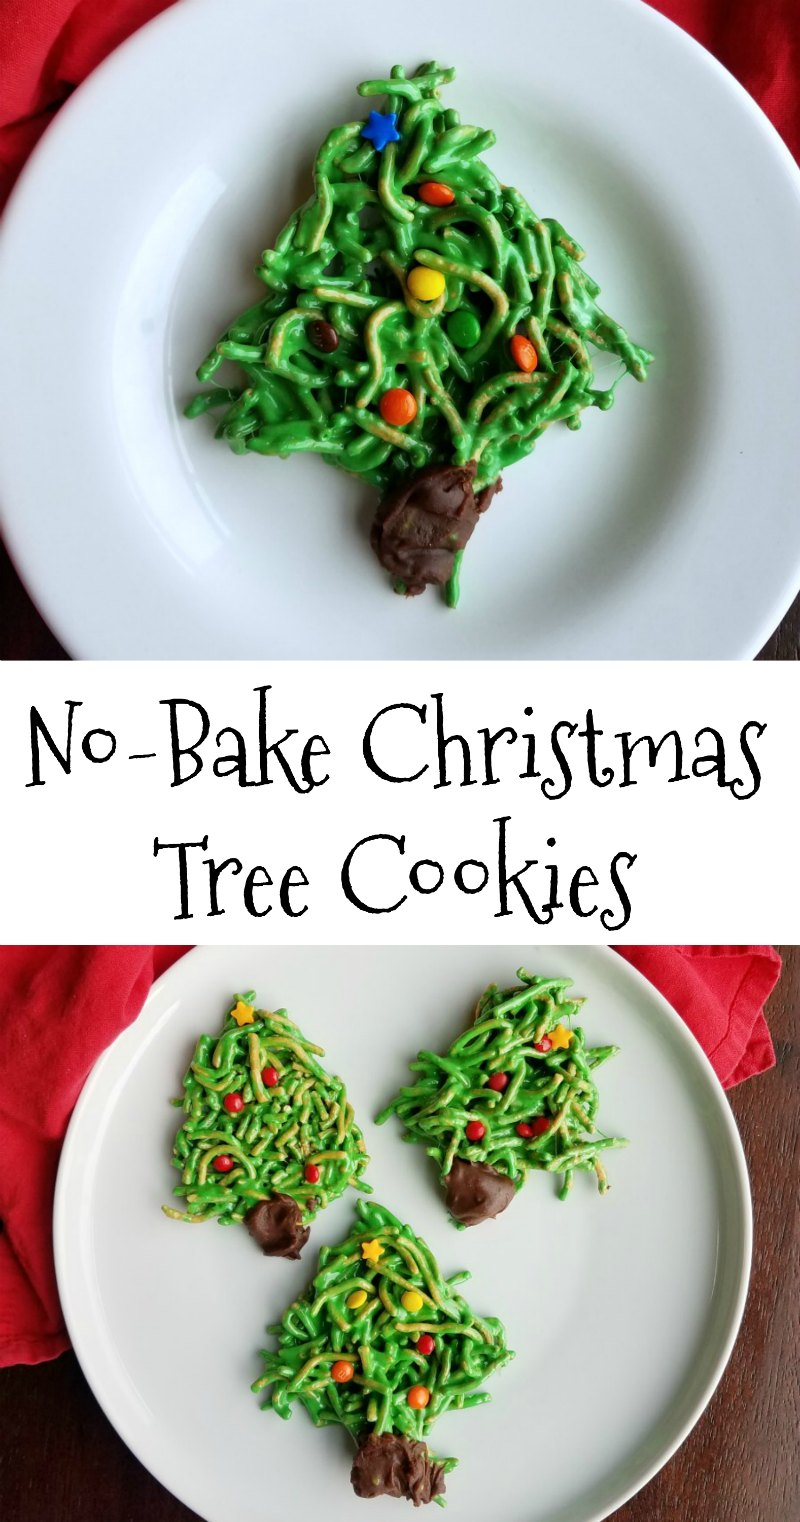 These festive cookies are a Christmasy twist on a favorite family recipe. They are no-bake and sure to put a smile on your face!